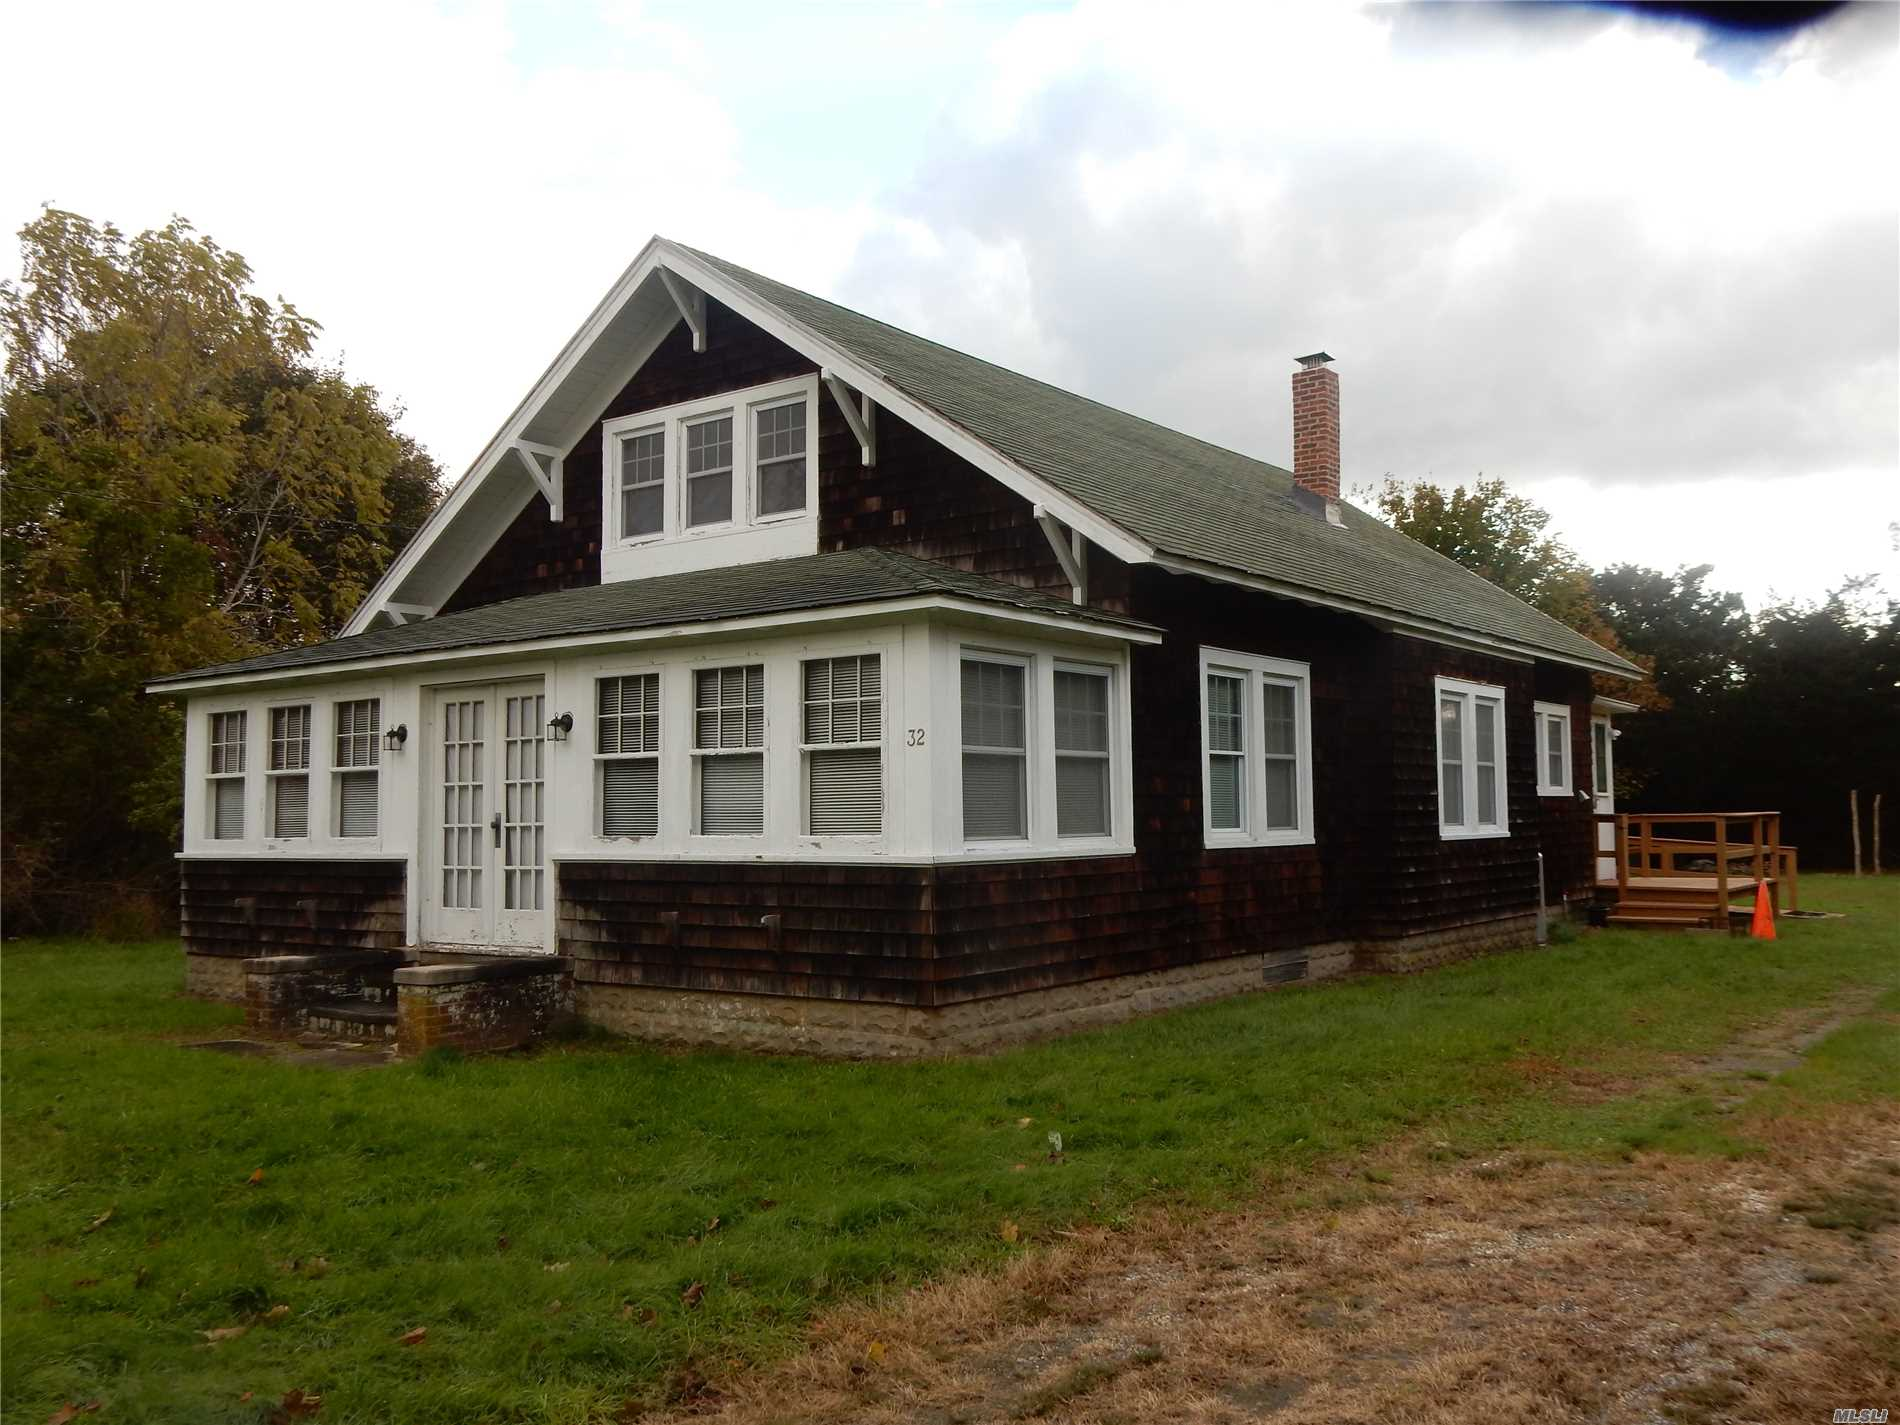 Charming, Older Home In The Remsenburg/Speonk Sd. Private Location Offering Large Eat-In-Kitchen, Dining Room, Living Room, 4 Season Room, 3 Bedrooms And 1 Full Bath. Use Of Garage Is Not Included In Rental, But There Is Plenty Of Storage Available In Full, Walk-Up Attic.